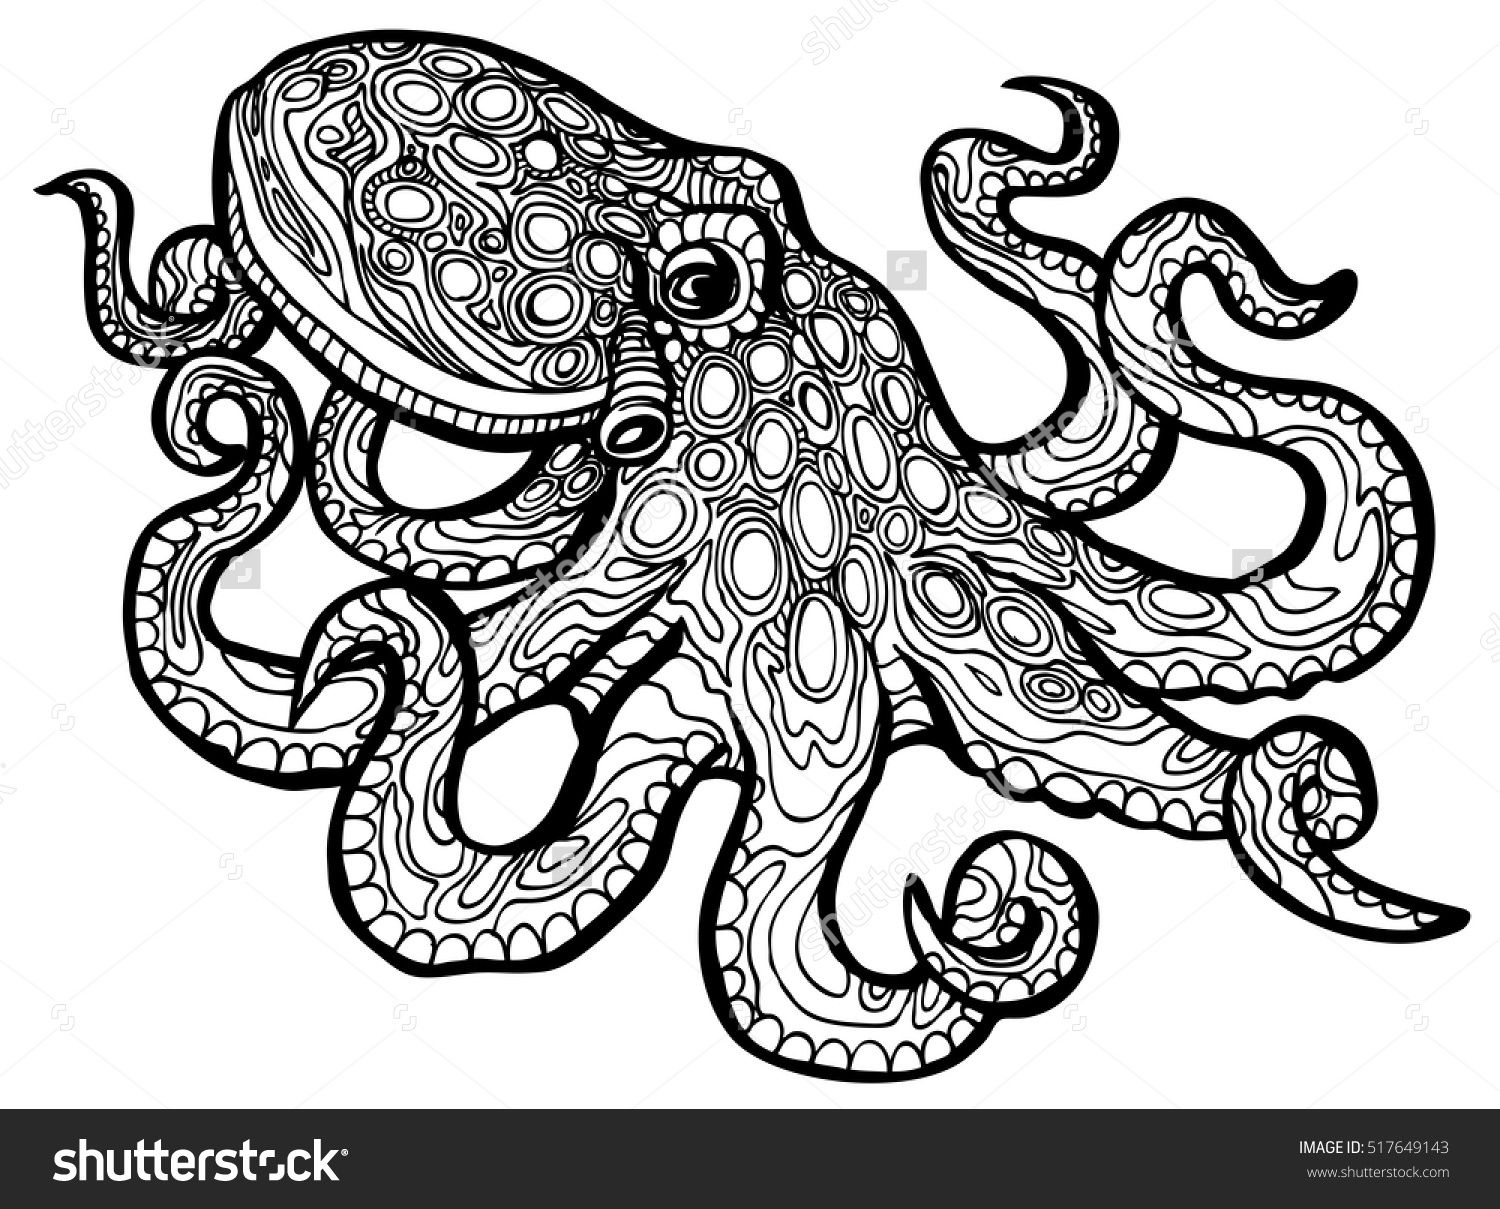 Download Stylized octopus - vector illustration for coloring book ...